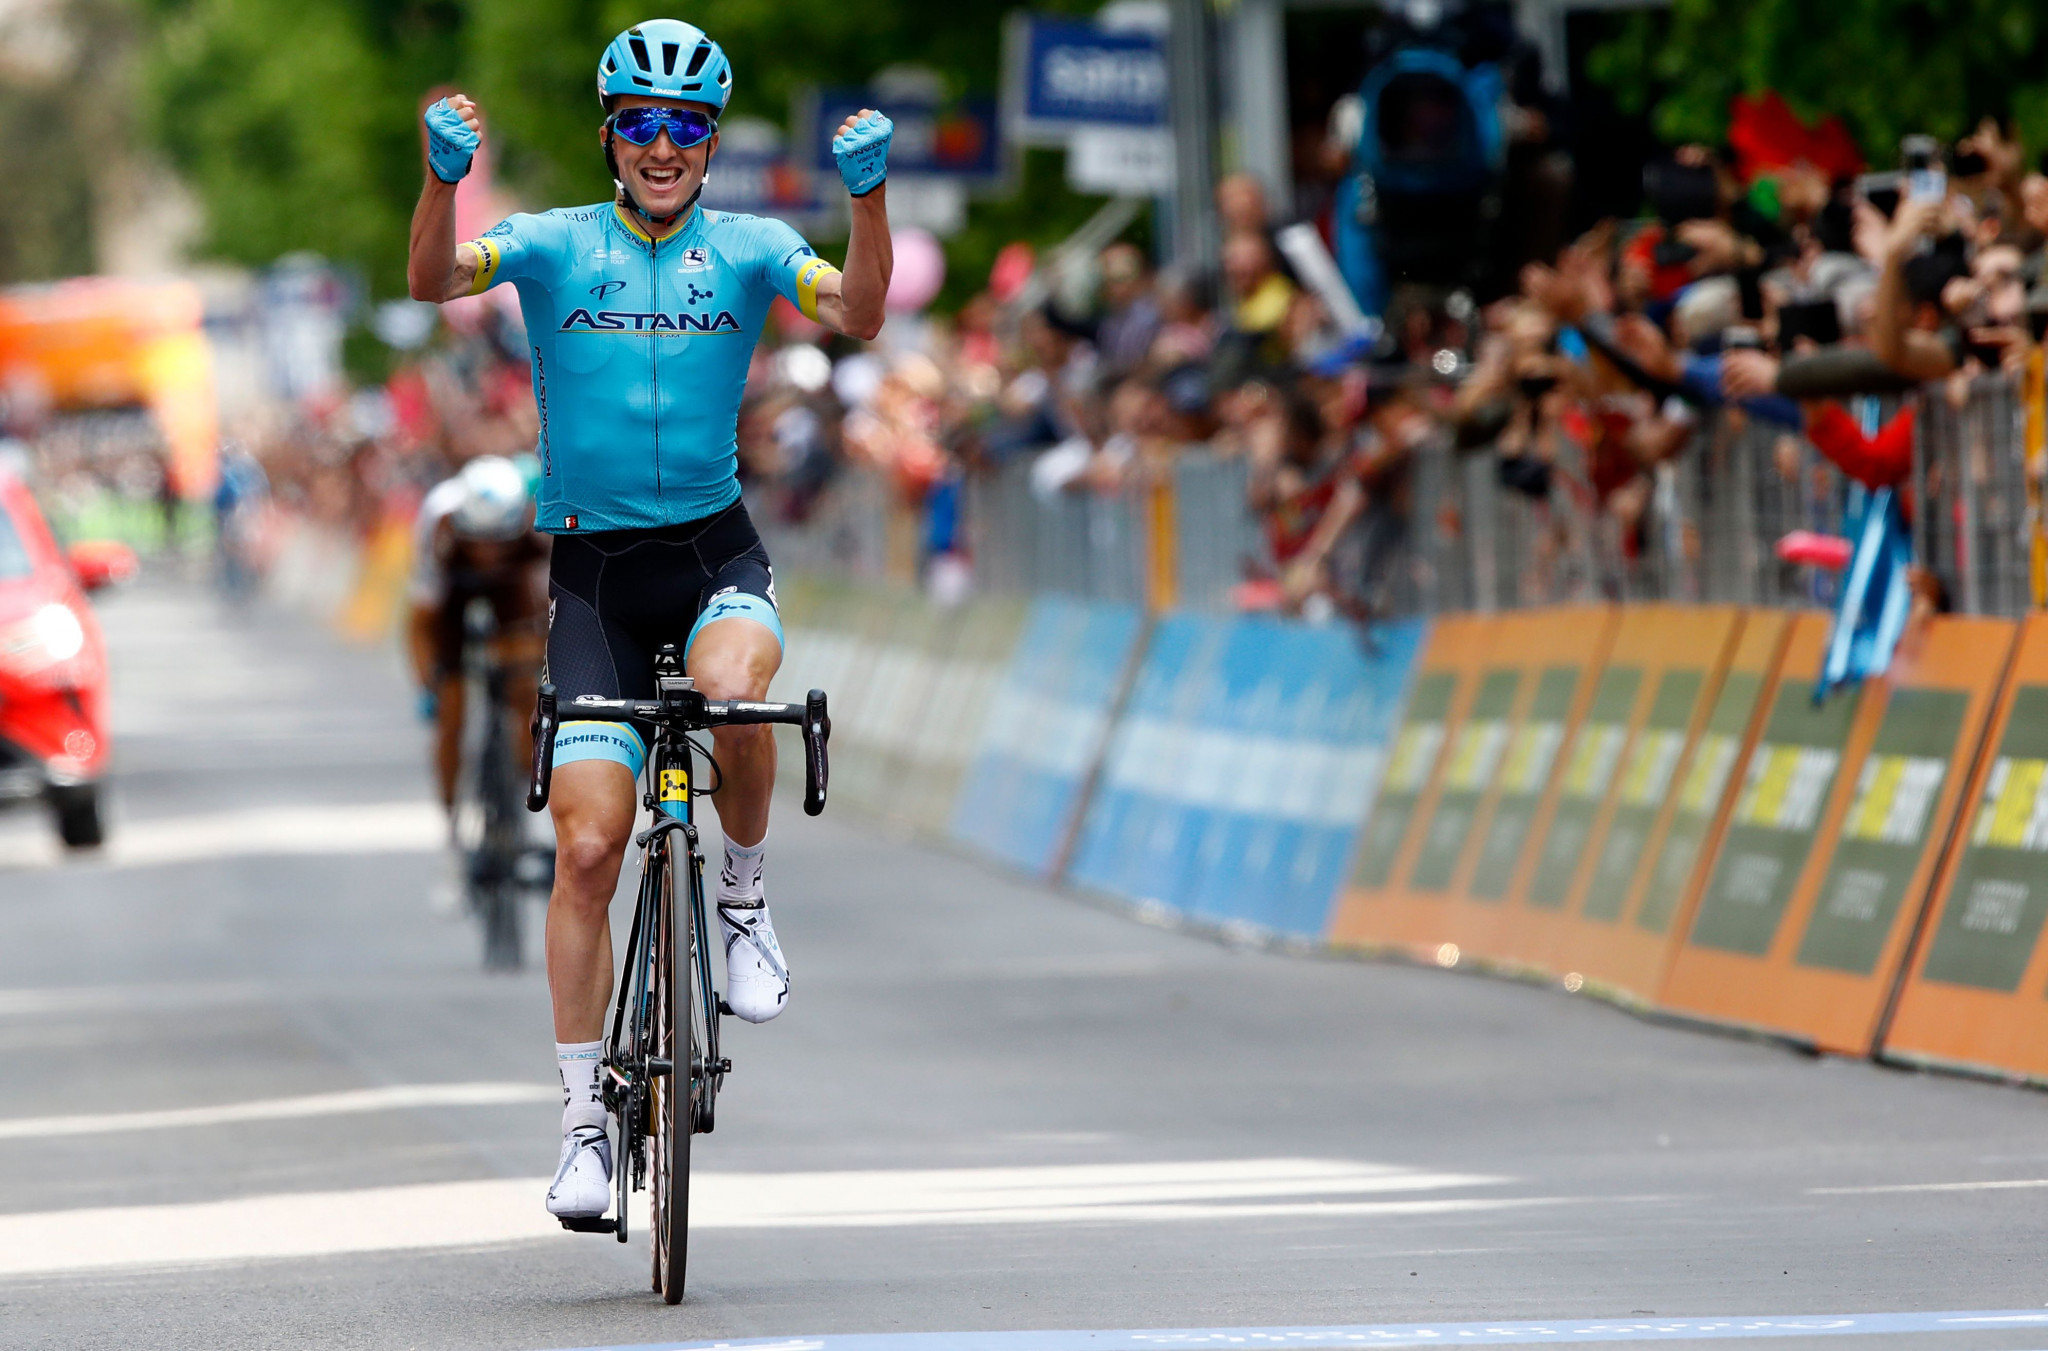 Spain's Pello Bilbao won the seventh stage of the Giro d'Italia today ©Getty Images